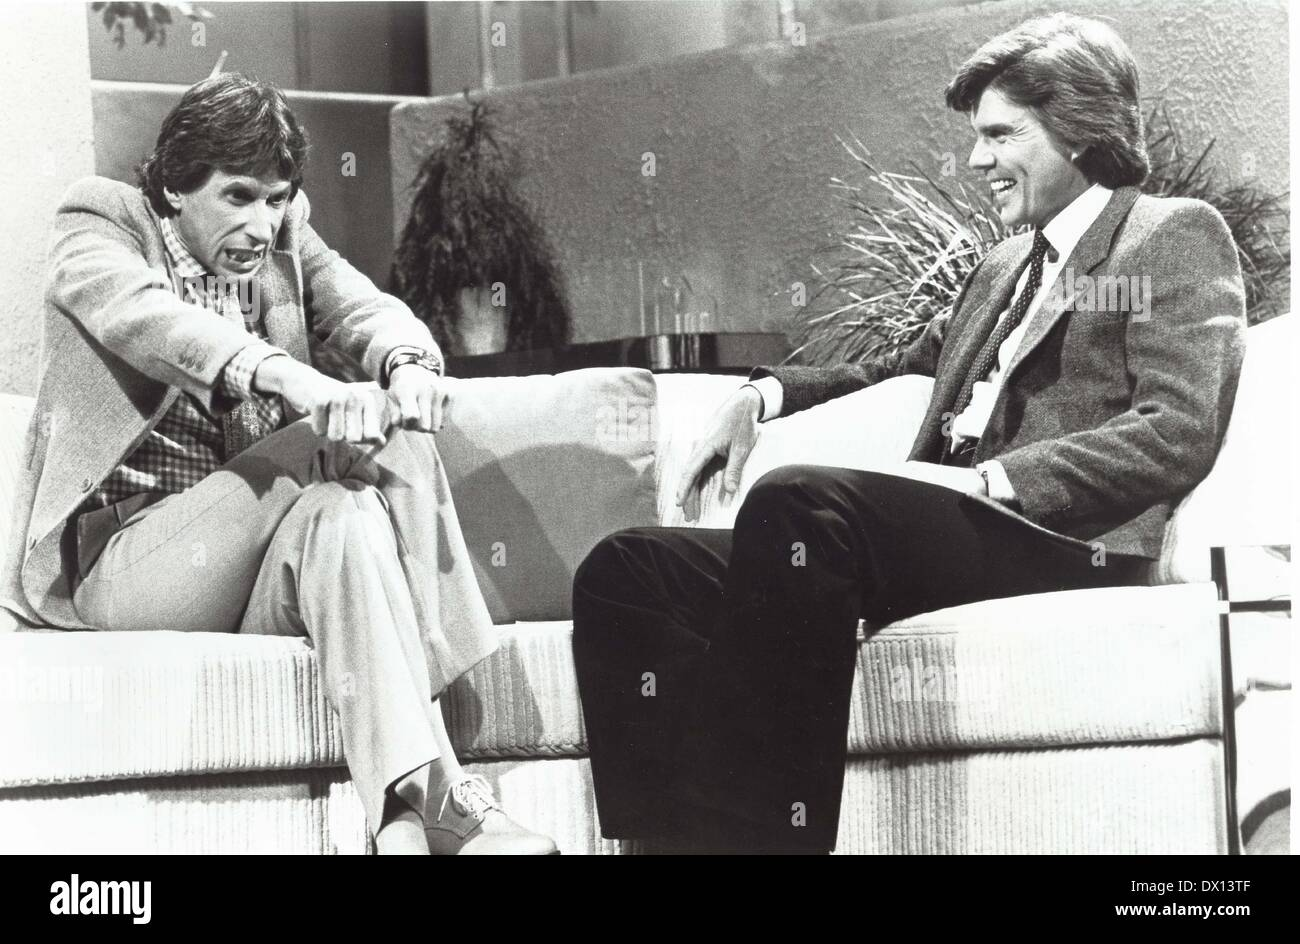 DAVID BRENNER (February 4, 1936 - March 15, 2014) was an American stand-up comedian, actor and author. The most frequent guest on The Tonight Show Starring Johnny Carson in the 1970s and 1980s, Brenner was a pioneer in the genre of observational comedy. PICTURED: JOHN DAVIDSON with DAVID BRENNER on 'The John Davidson Show'. (Credit Image: © Globe Photos/ZUMAPRESS.com) - Stock Image